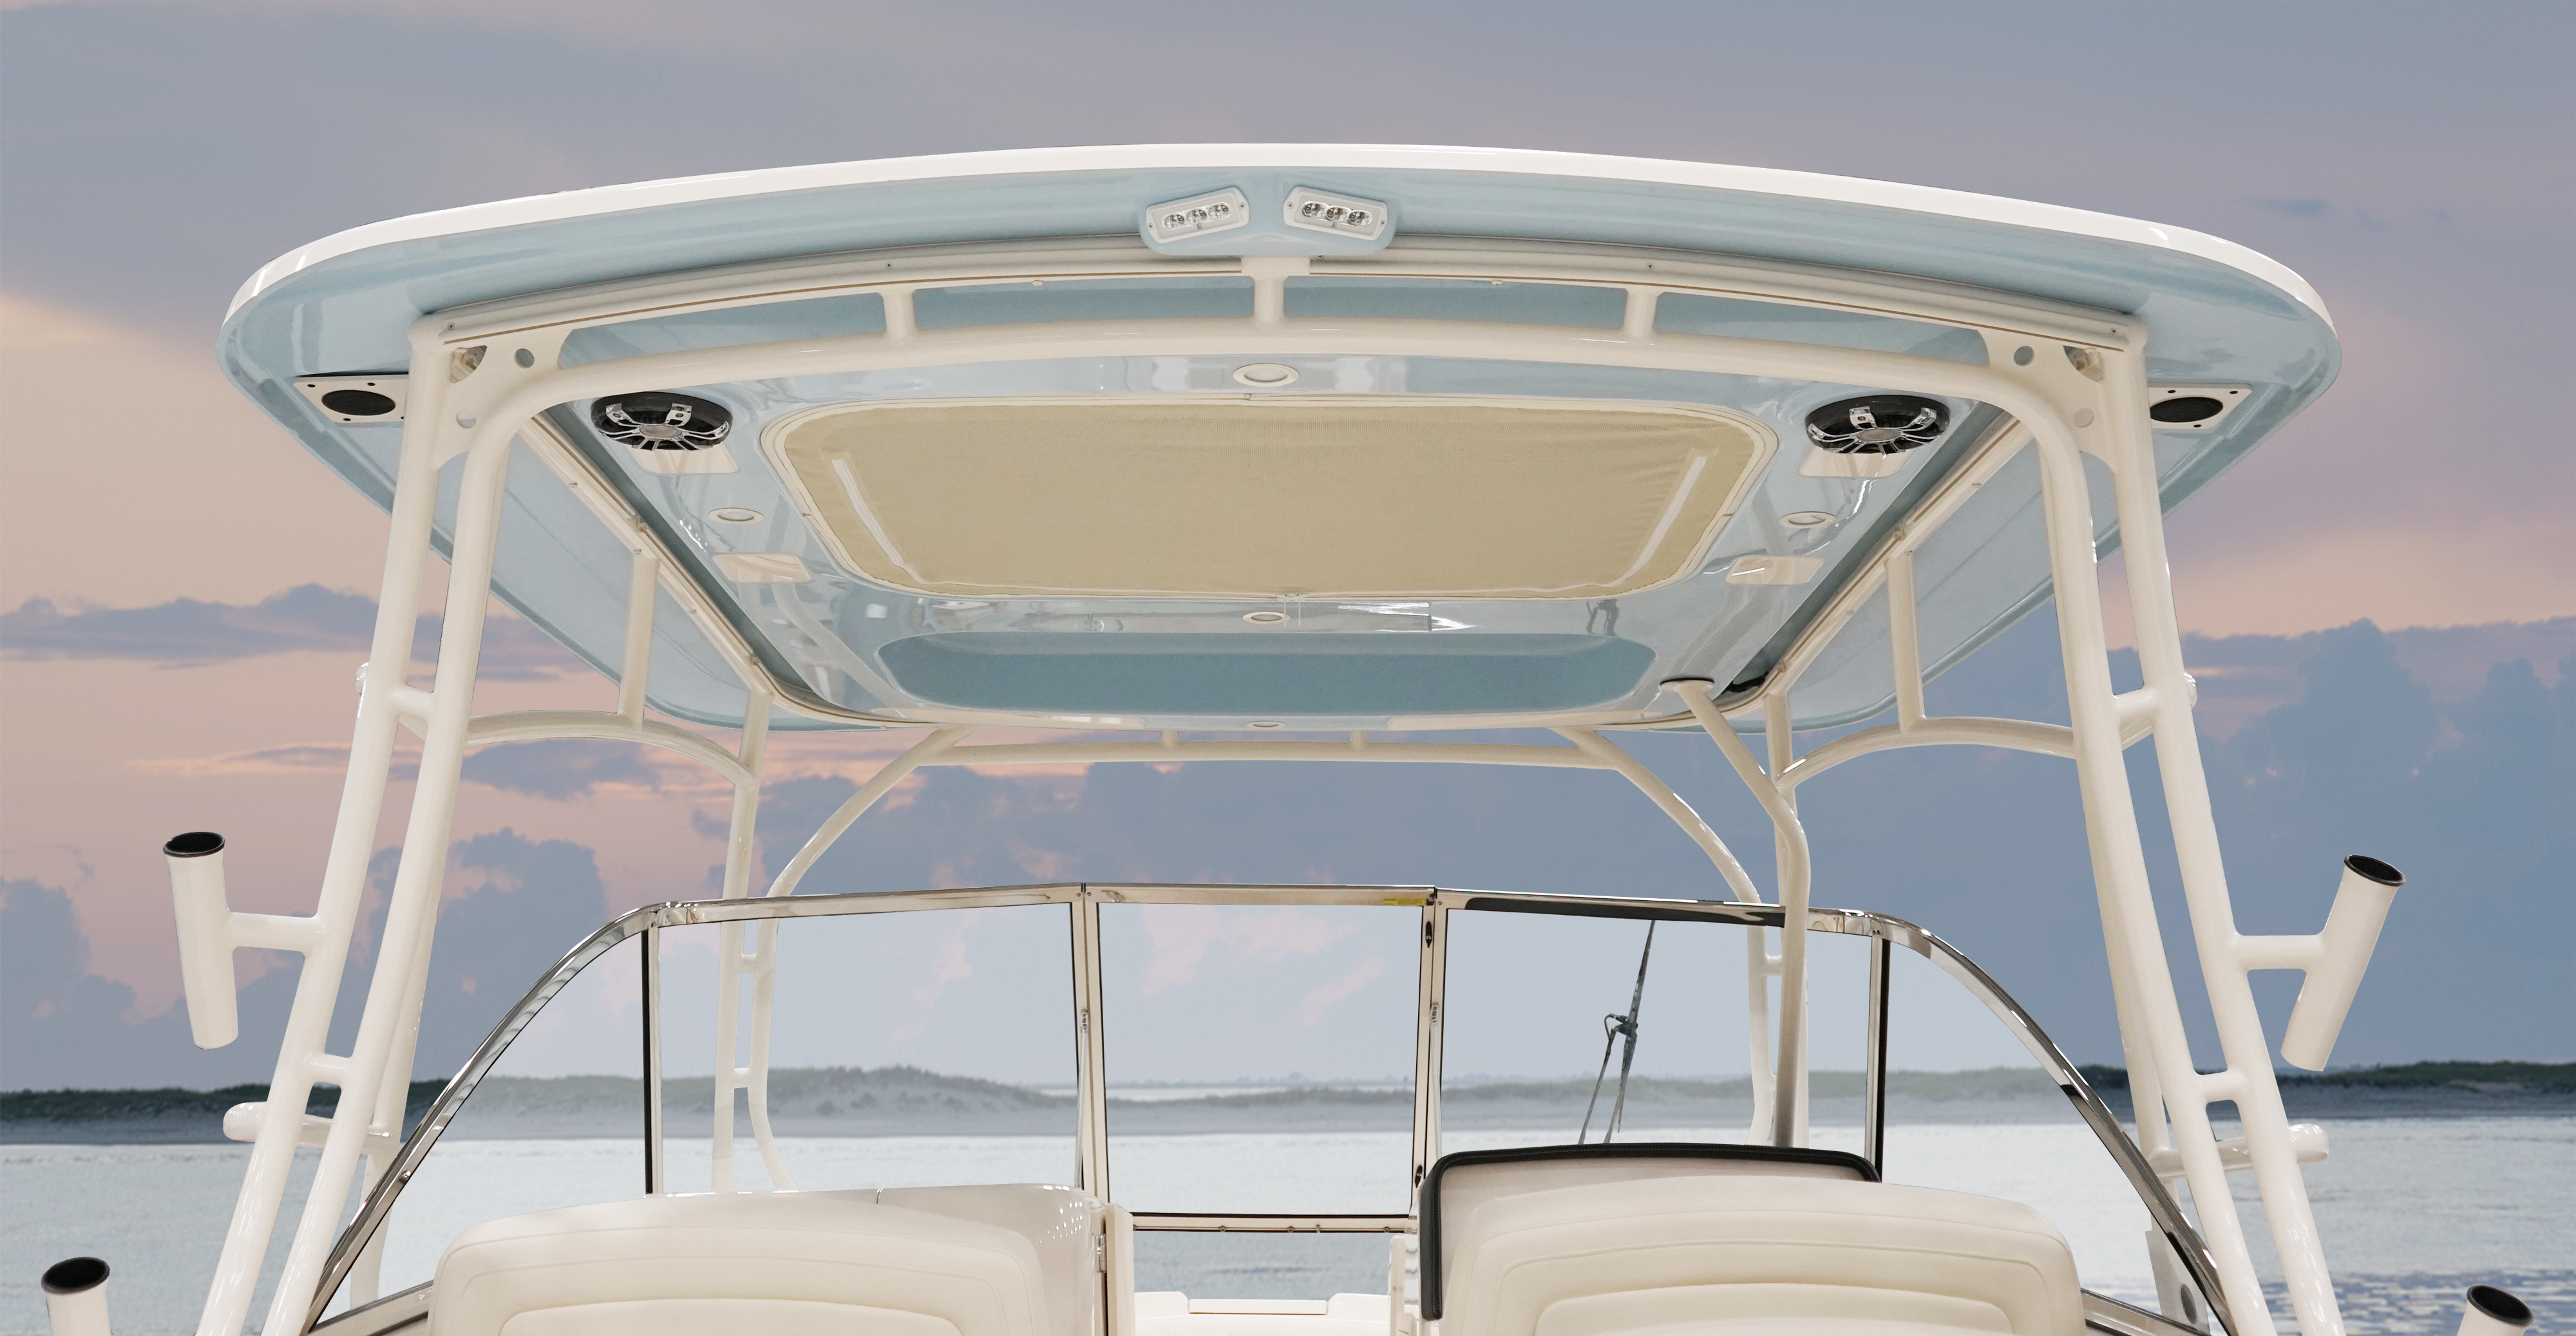 Grady-White Freedom 285 28-foot dual console hardtop color to match hull color